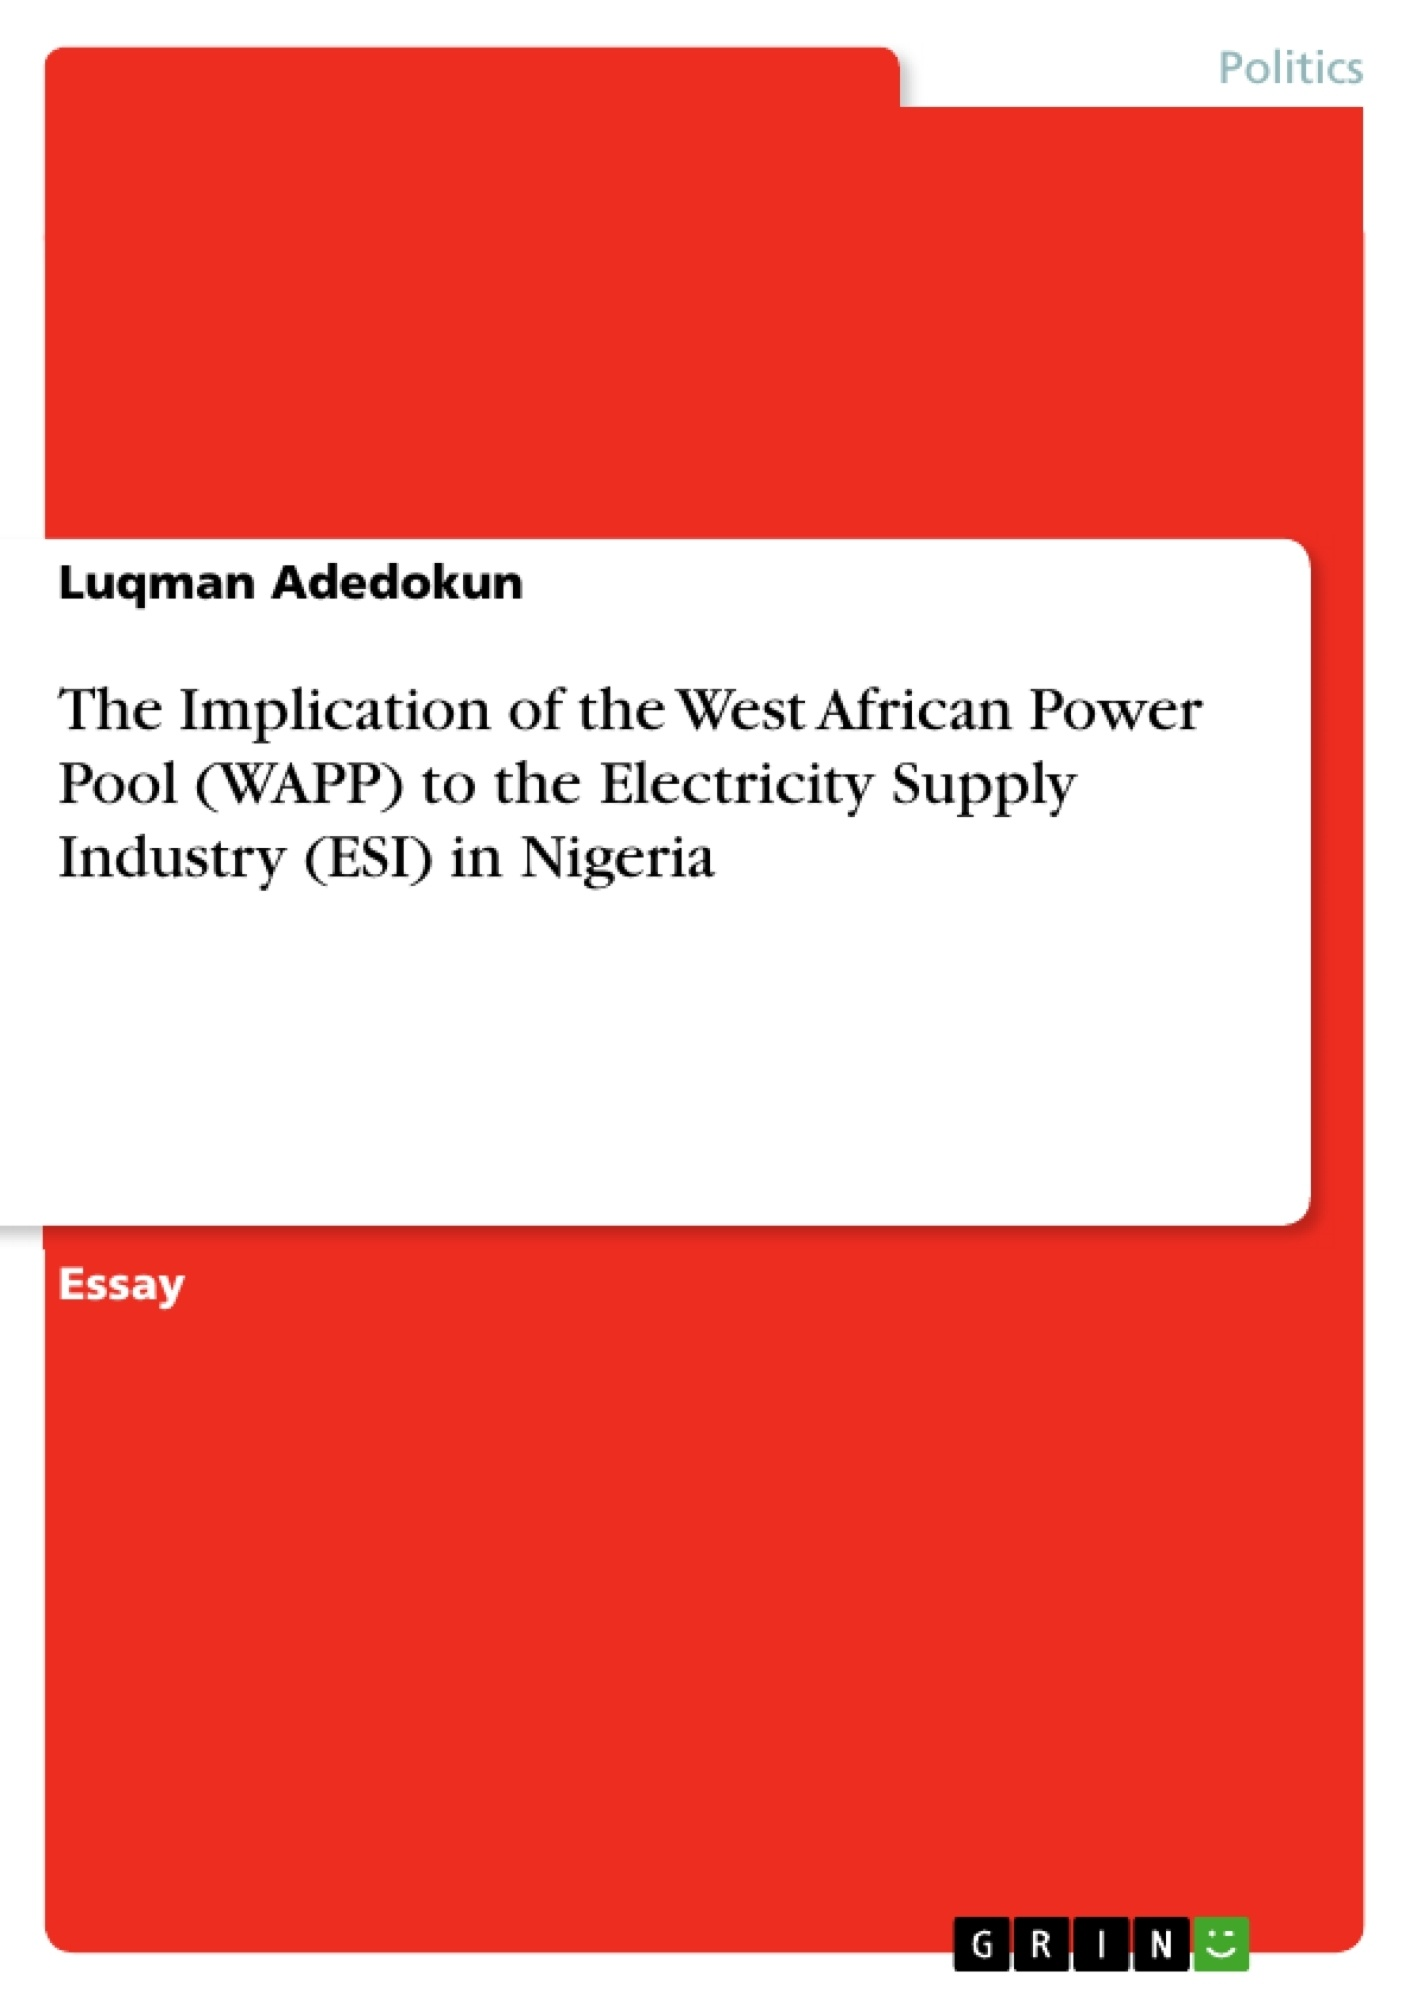 Title: The Implication of the West African Power Pool (WAPP) to the Electricity Supply Industry (ESI) in Nigeria